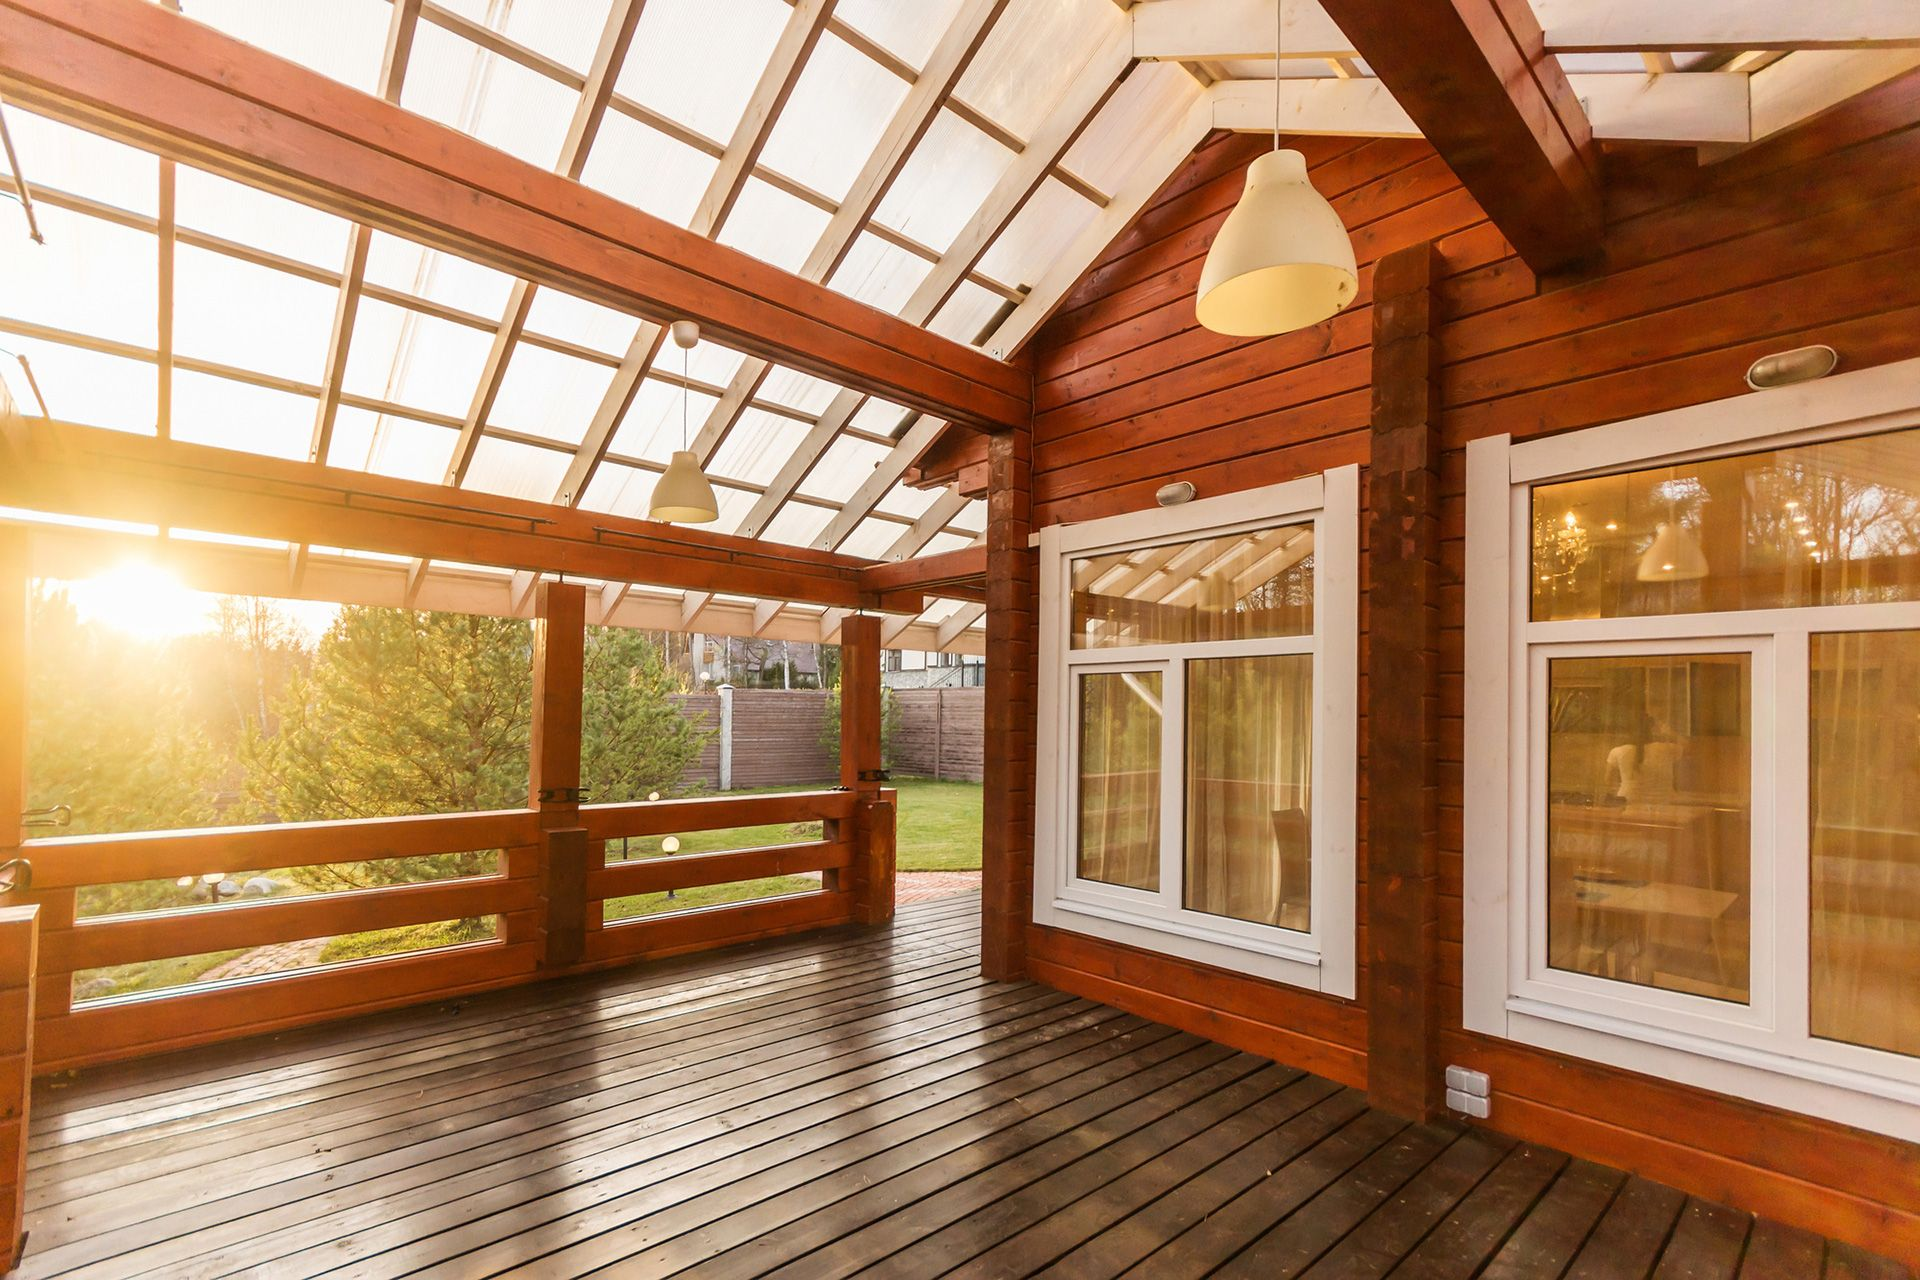 9 Creative Ideas For Enclosing A Porch Stouffville Glass Blog